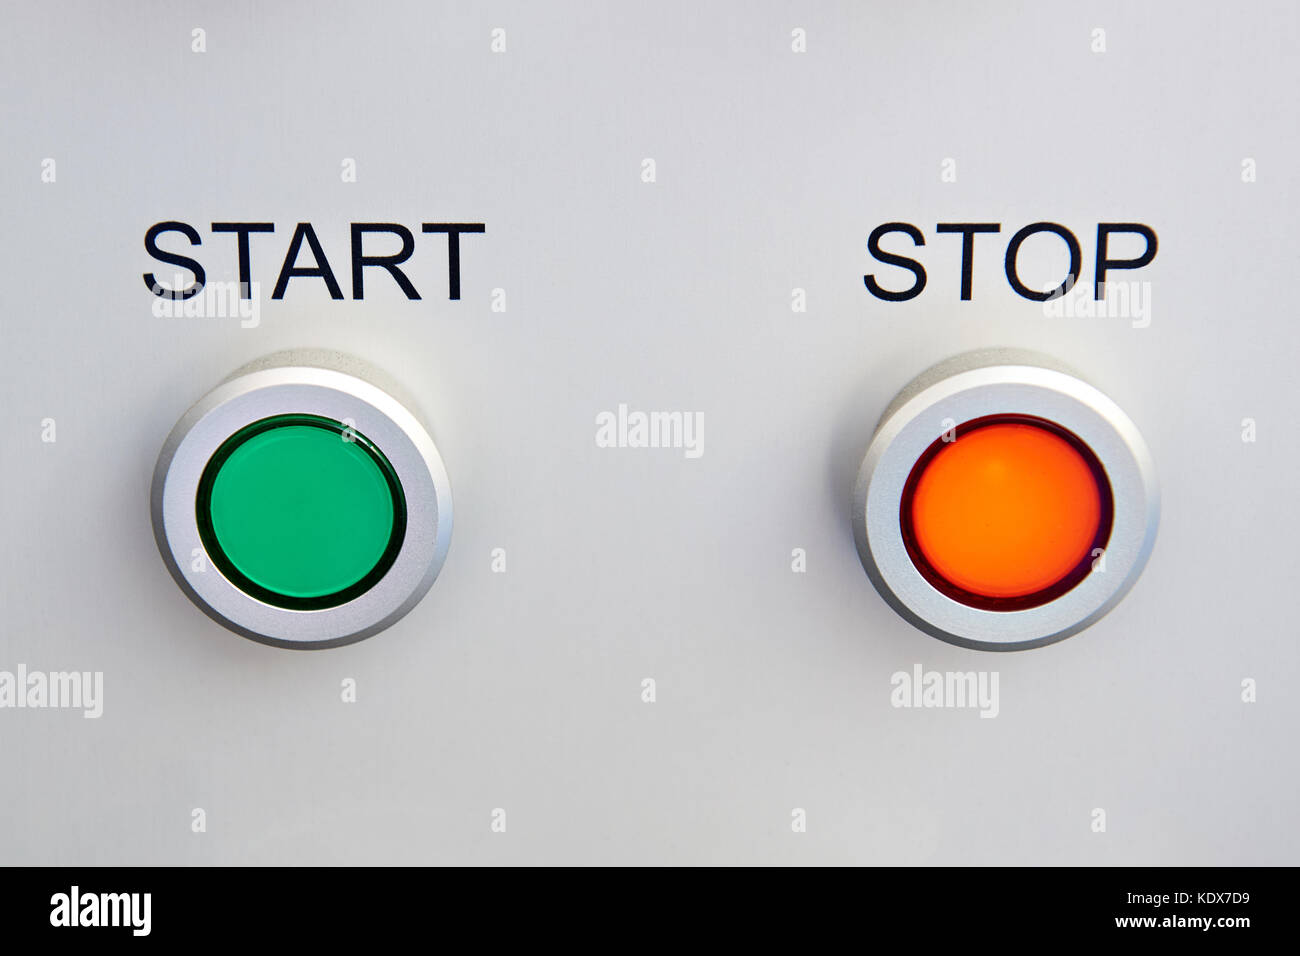 engine stop start button stock photos engine stop start button stock images alamy. Black Bedroom Furniture Sets. Home Design Ideas